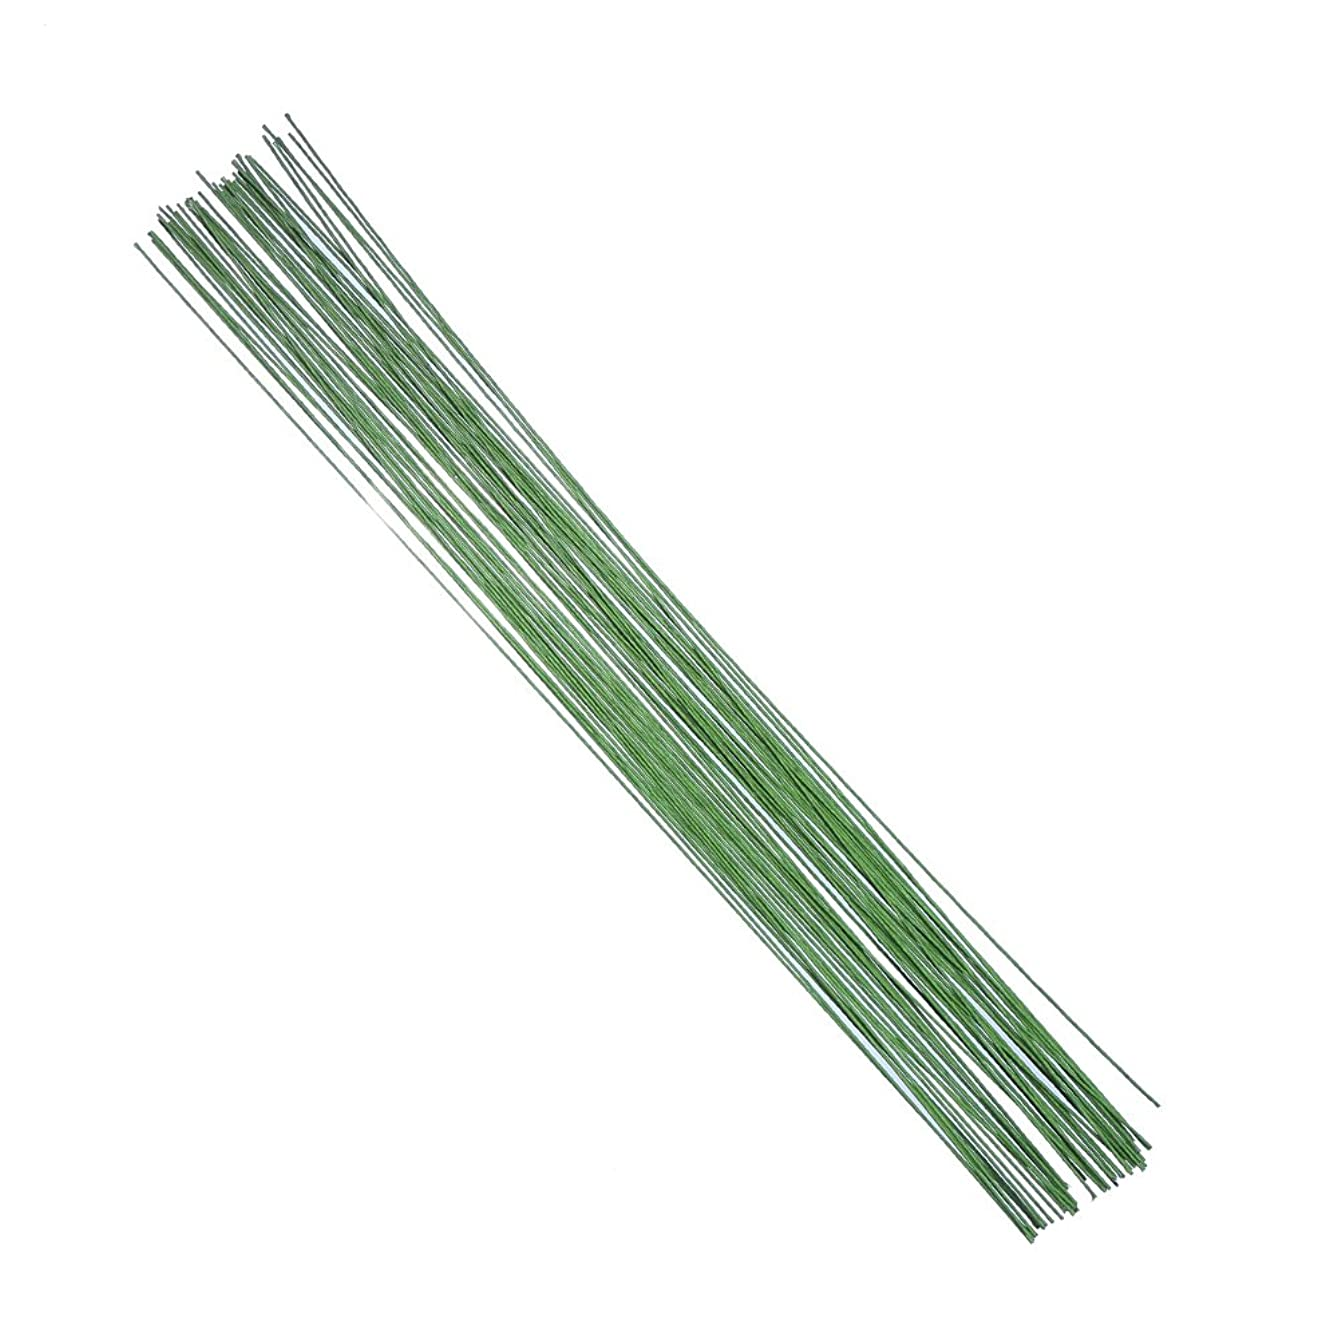 Decora 20 Gauge Green Floral Stem Wire 16 inch,50pcs/Package